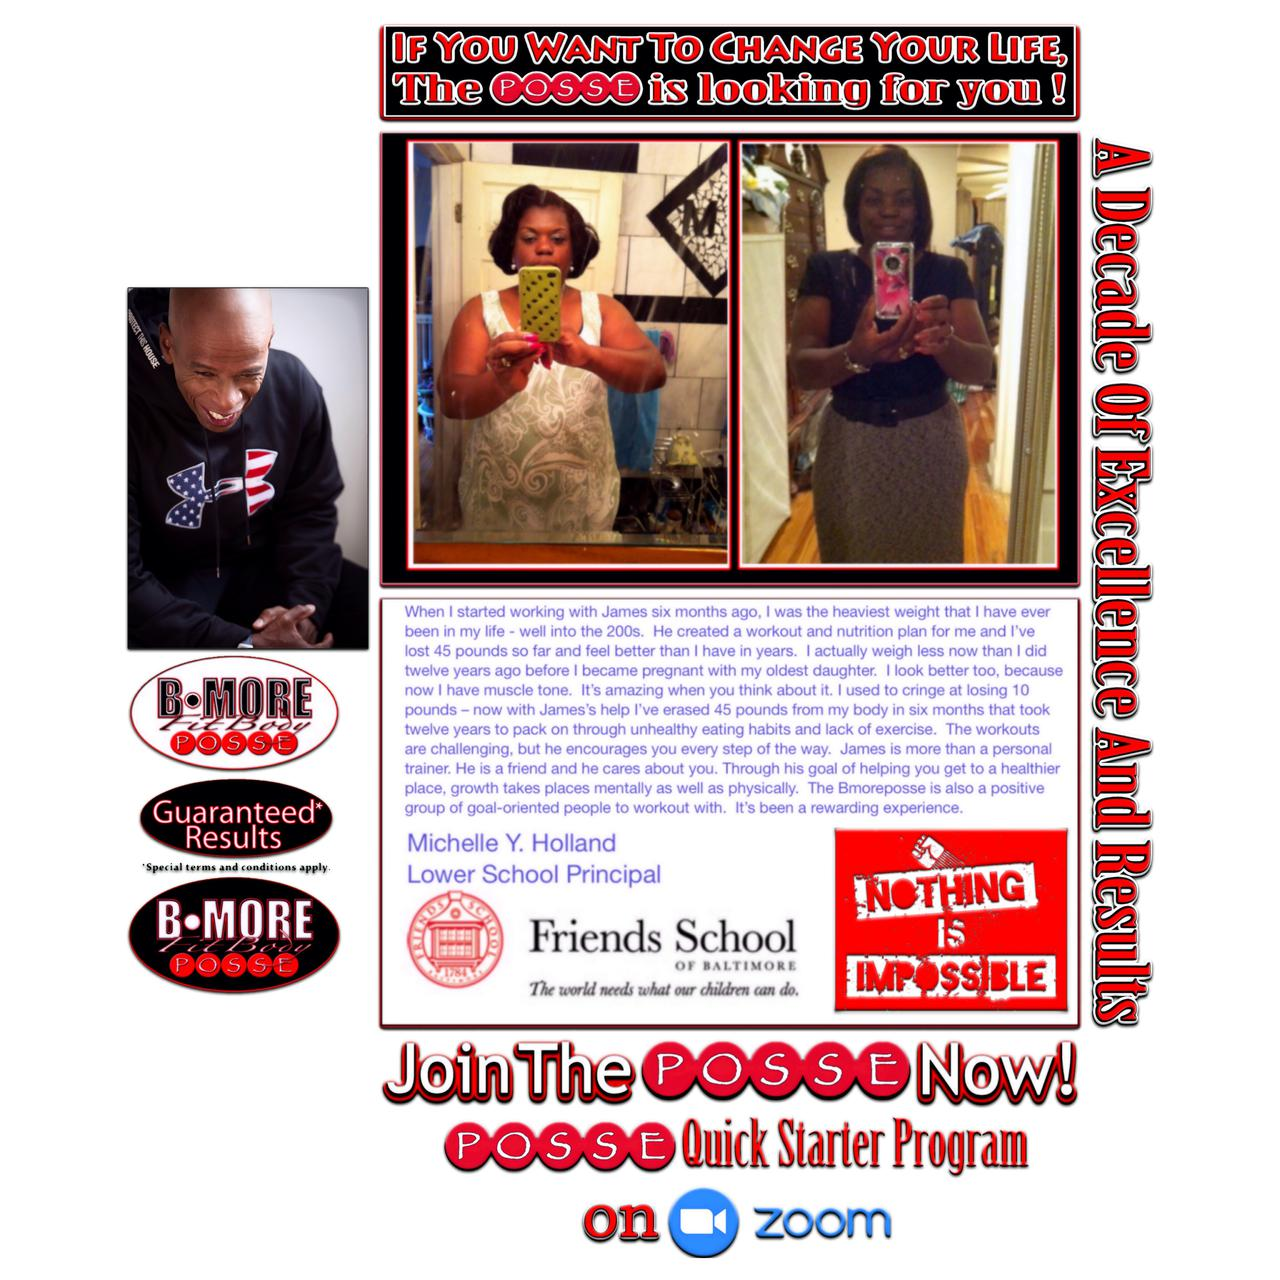 Personal trainer in Baltimore, MD.